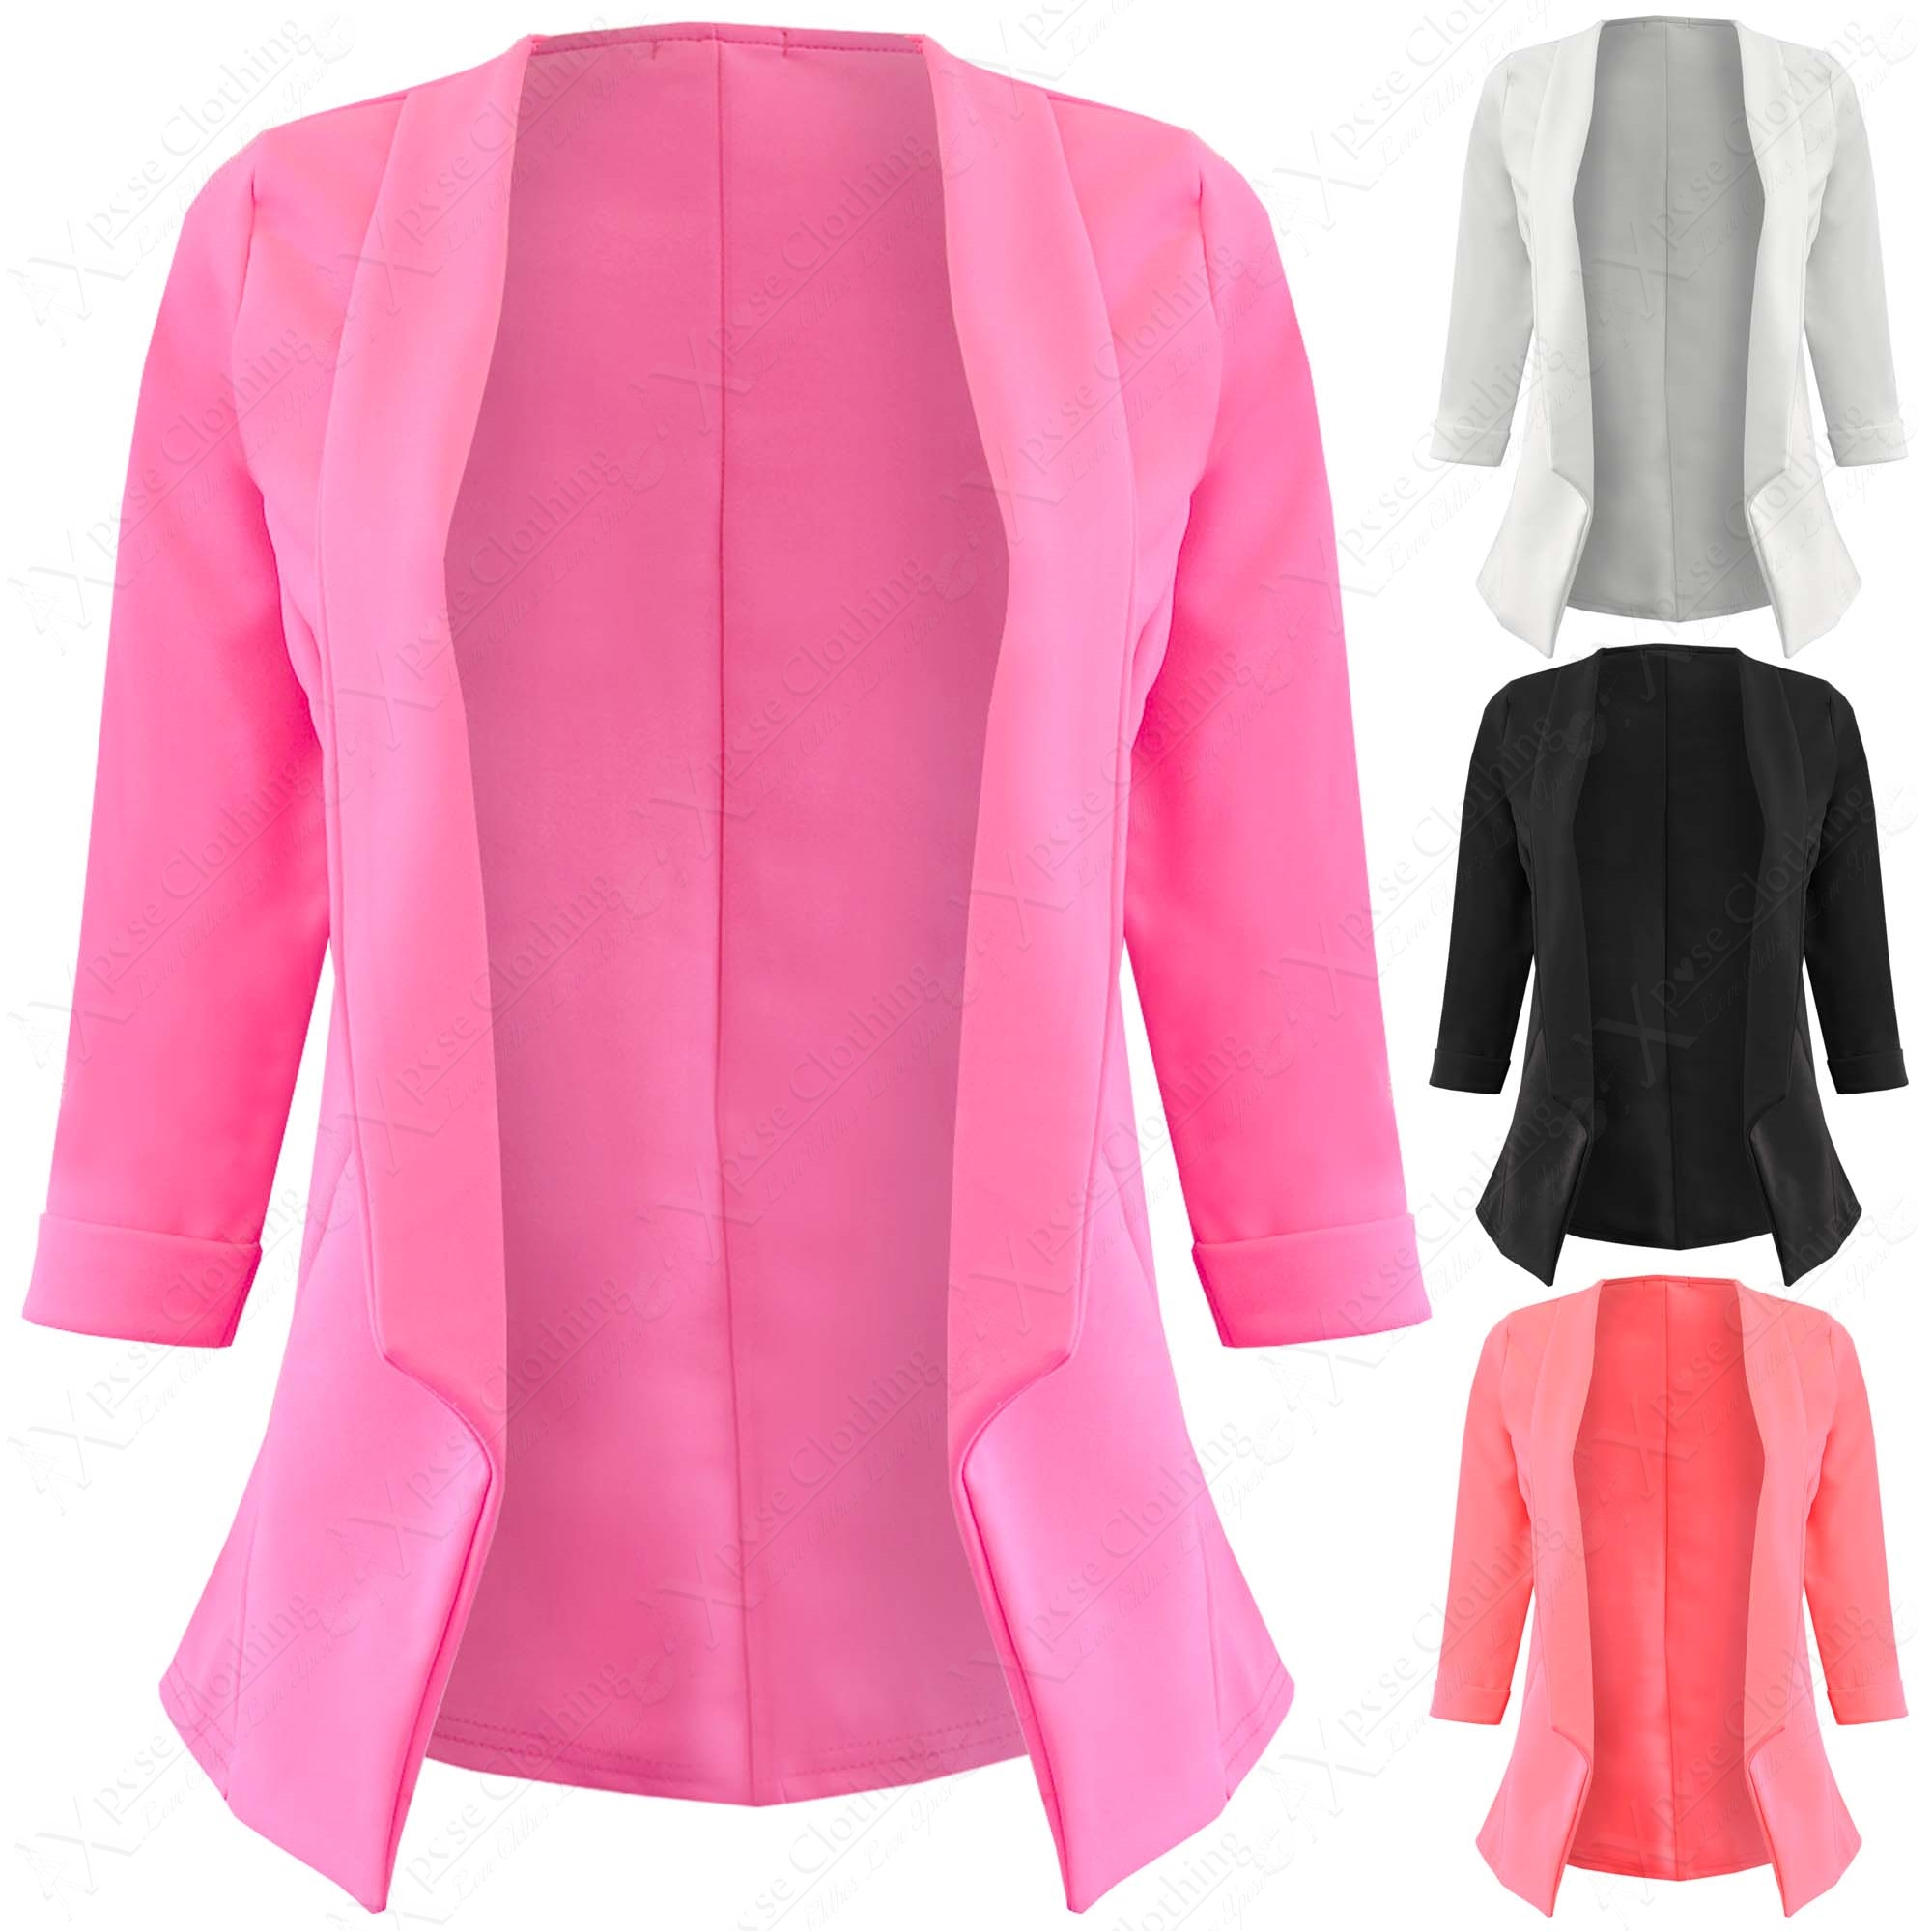 NEW LADIES CLASSIC OPEN BLAZER WOMENS SMART LOOK WORK JACKET 3/4 ...